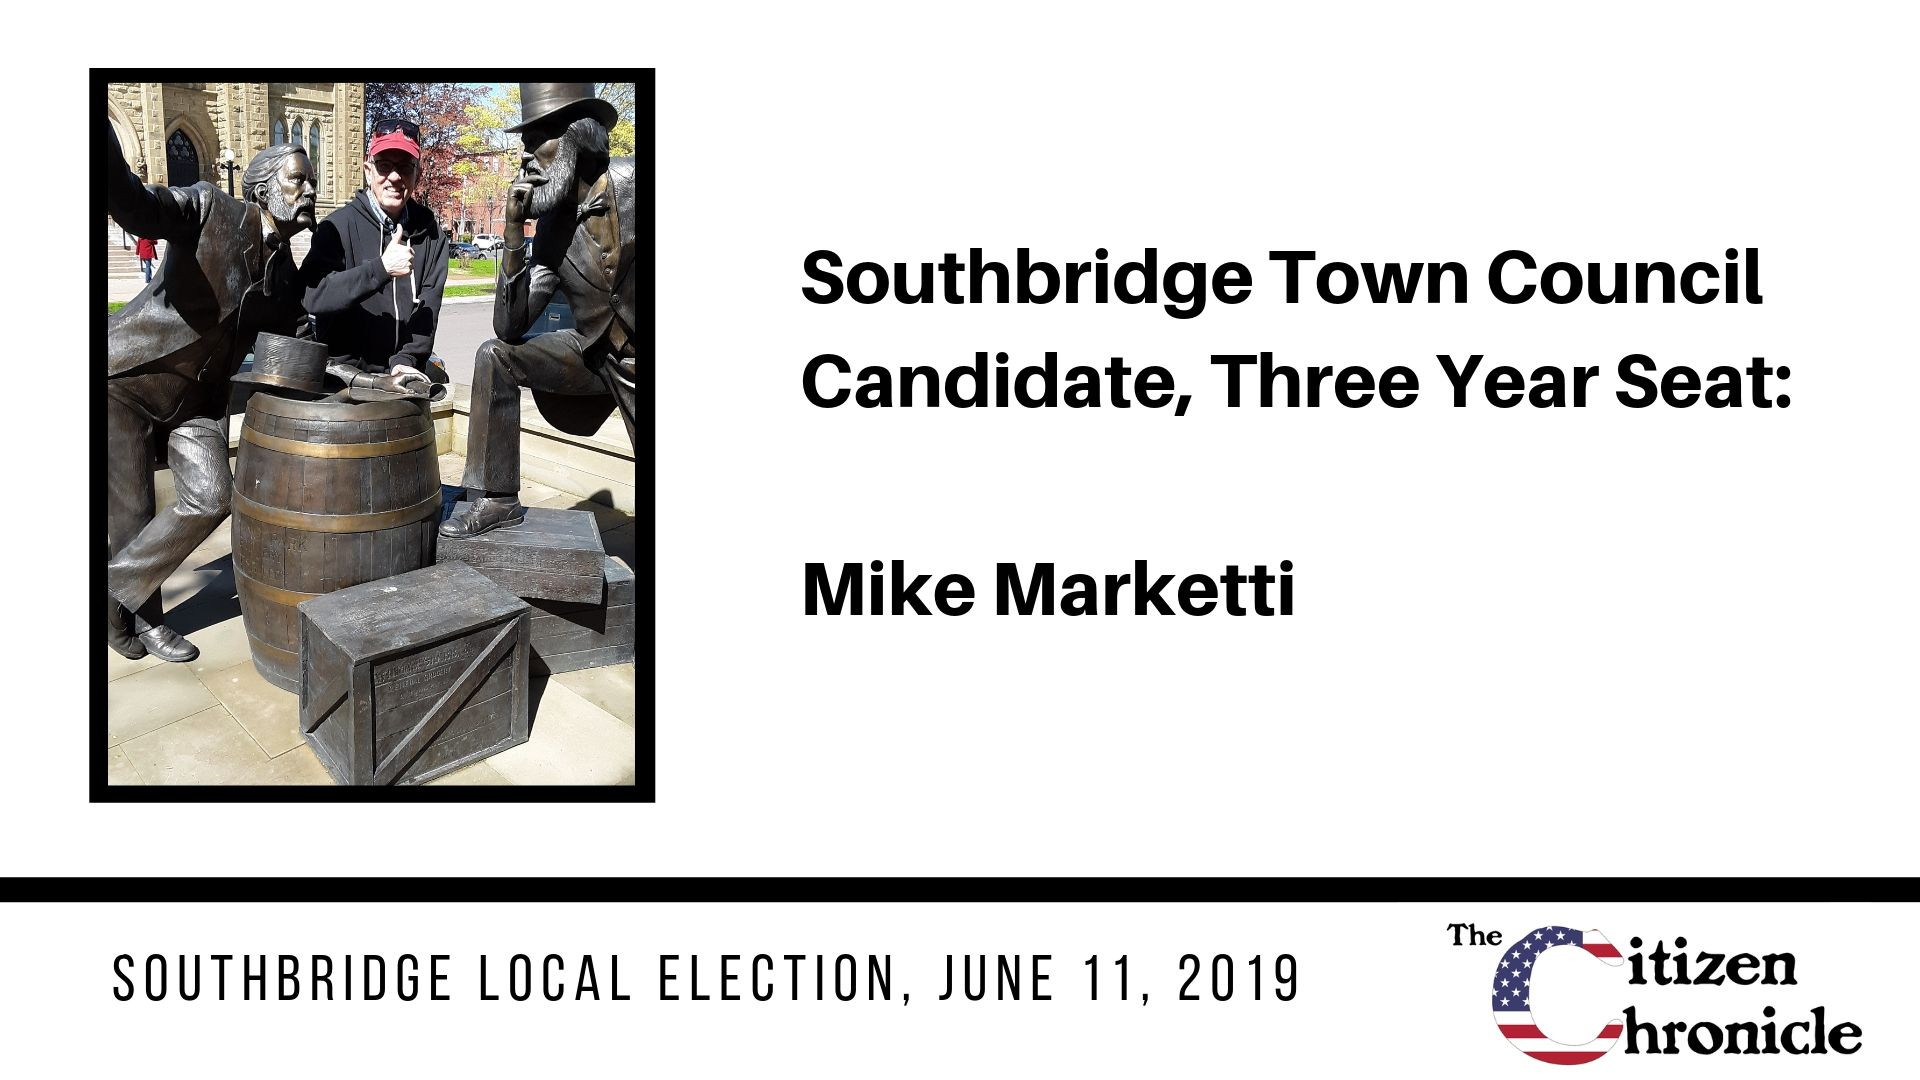 Southbridge Local Election: Letter from Mike Marketti